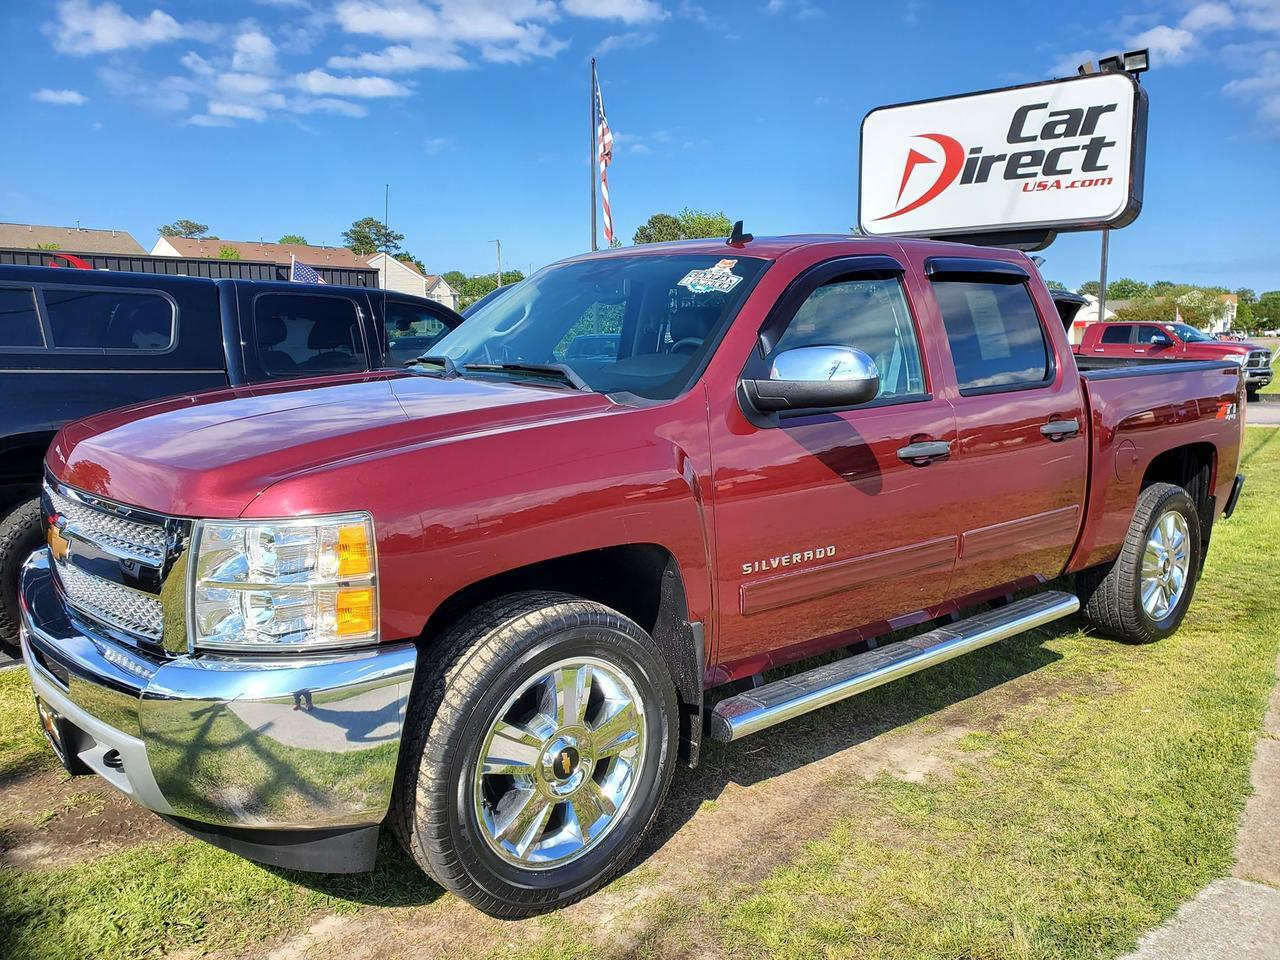 2013 CHEVROLET SILVERADO LT Z71 CREW CAB 4X4, WARRANTY, BACKUP CAMERA, BED LINER, BLUETOOTH, RUNNING BOARDS, LEATHER, ONSTAR! Virginia Beach VA